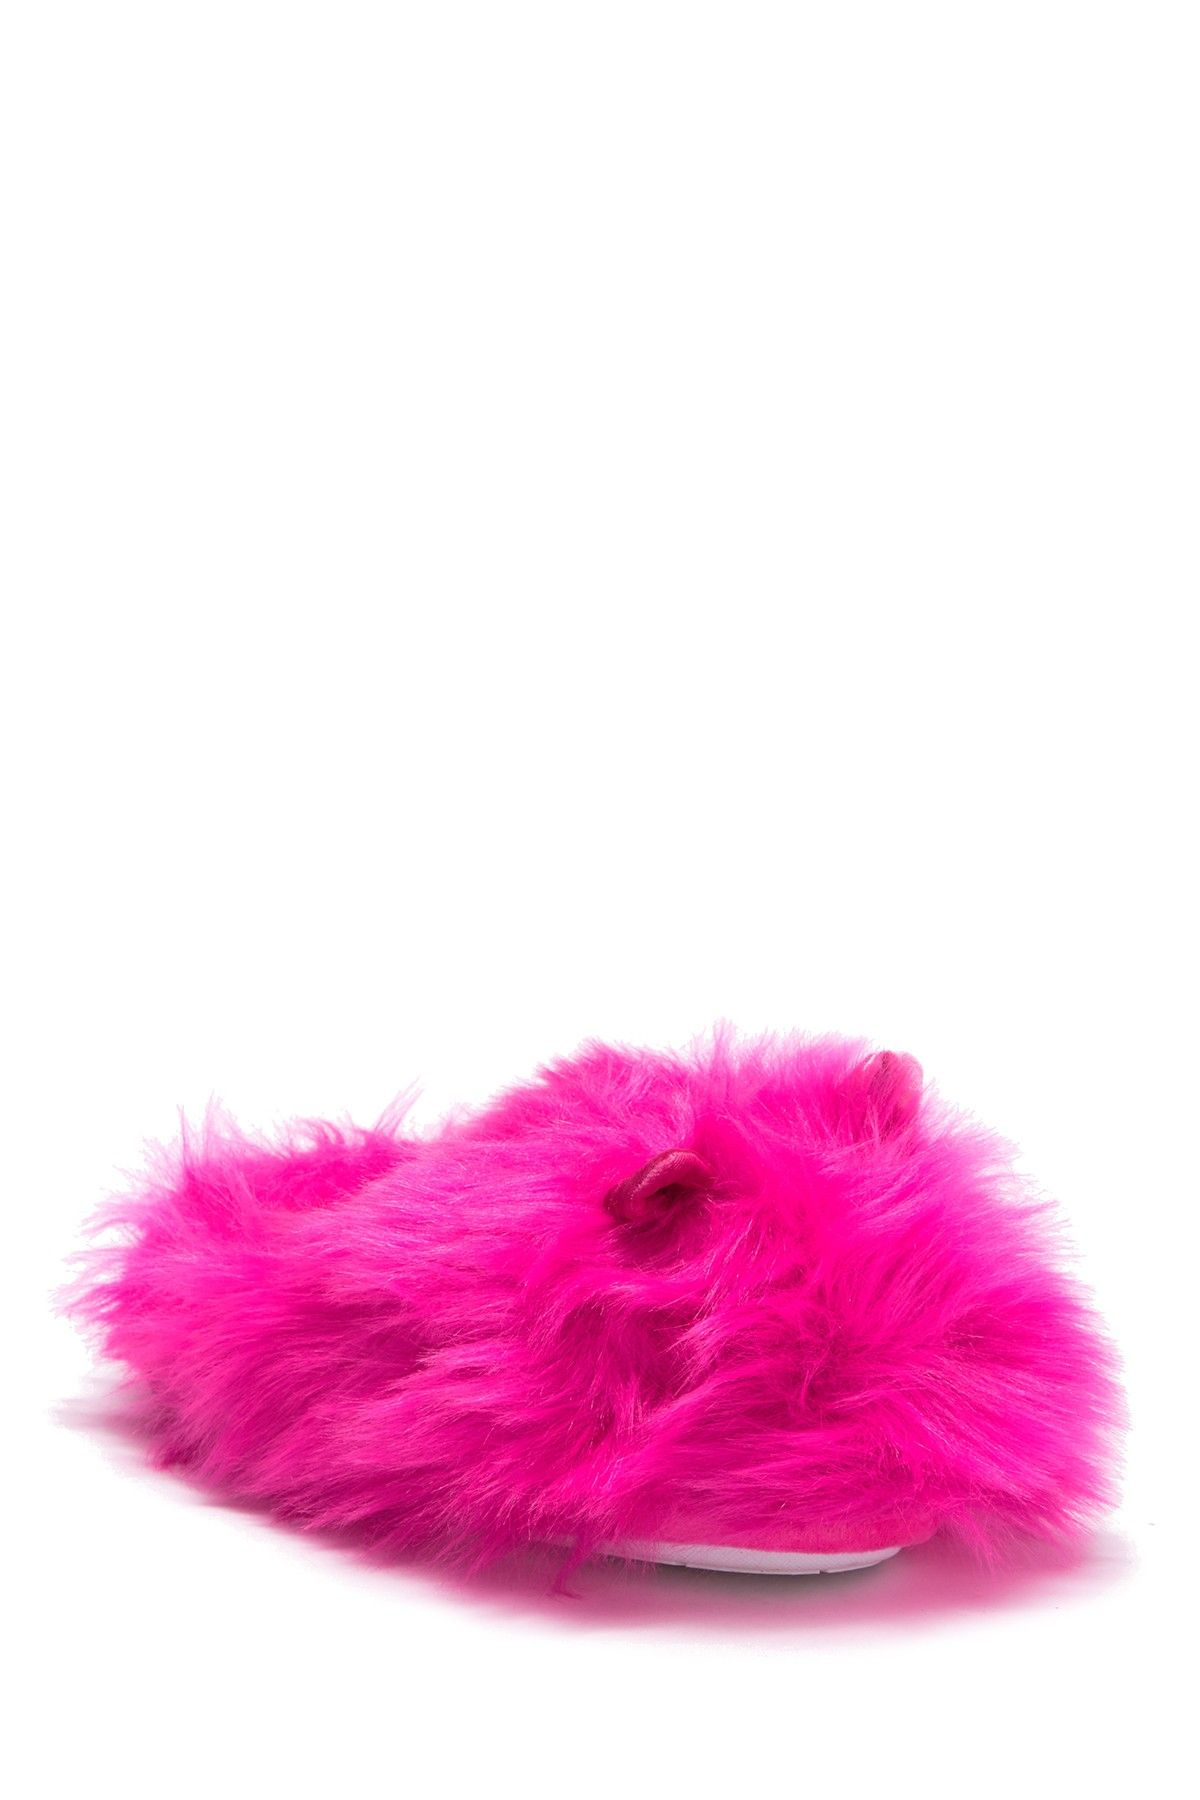 83f058cf5e4 Steve Madden - Faux Fur Furry Slipper is now 40% off. Free Shipping on  orders over  100.